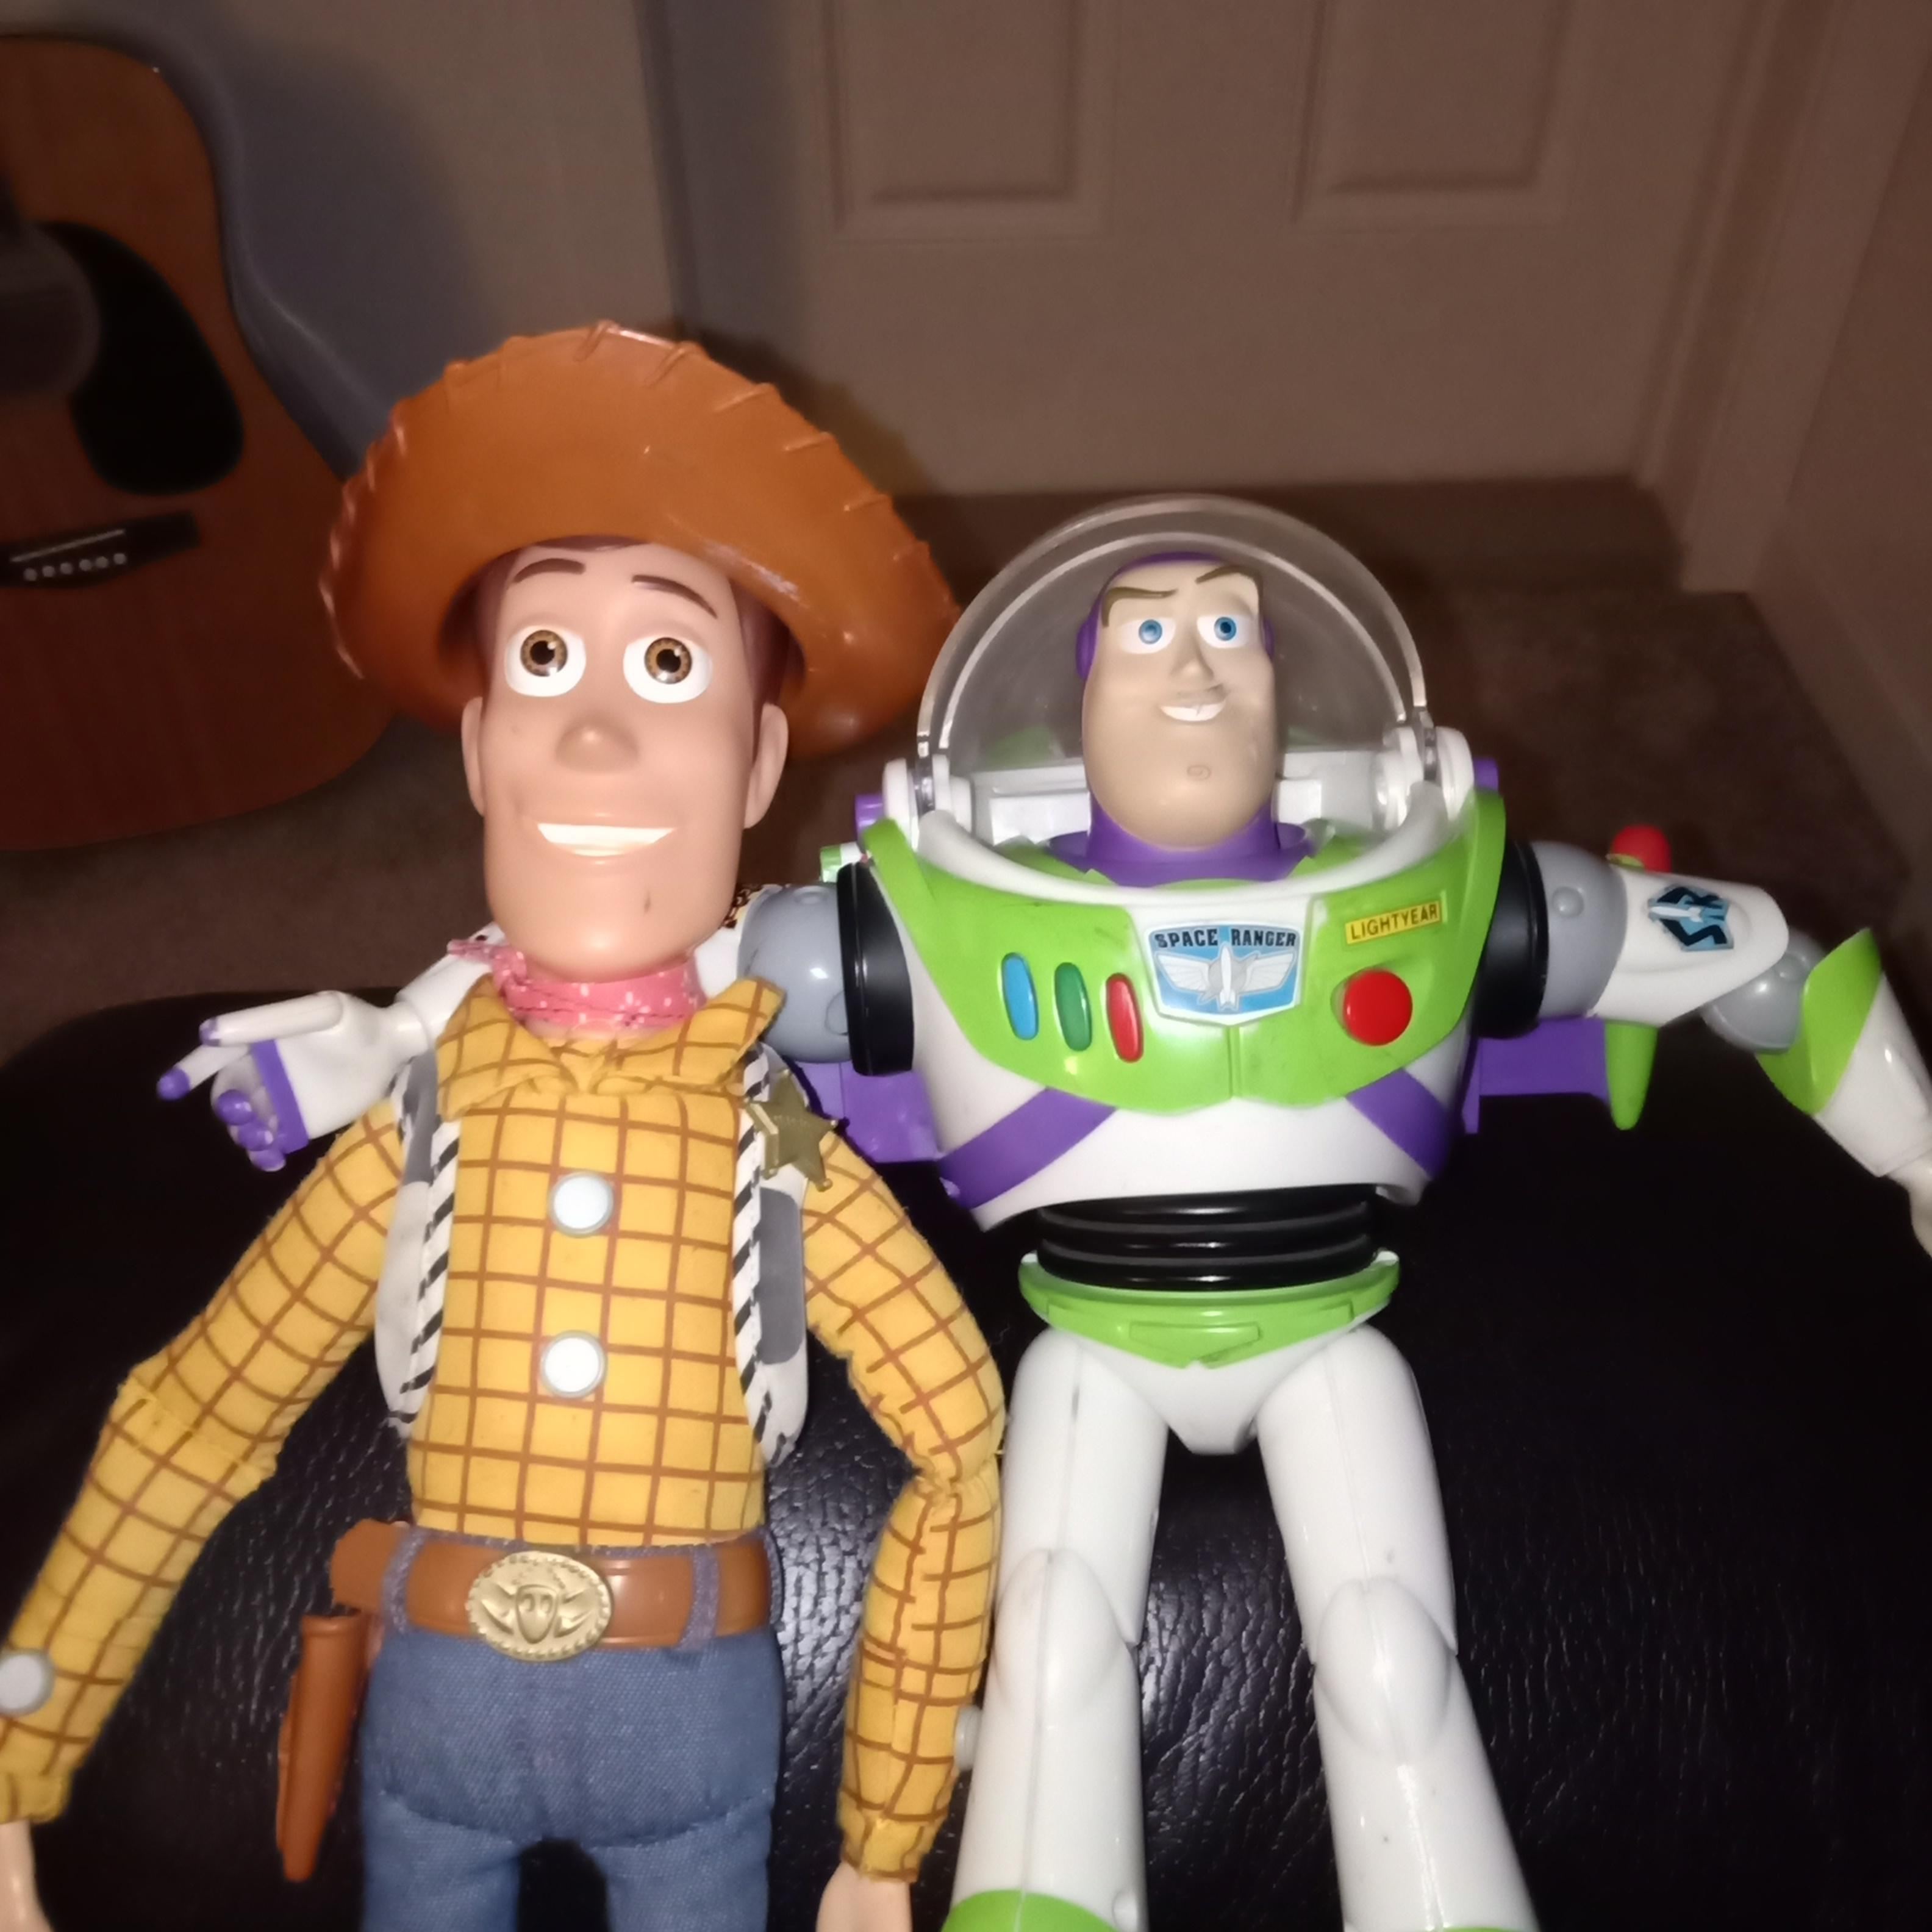 Toy Story Toys Vintage Found My Old Toy Story Stuff I Could Never Give These Away